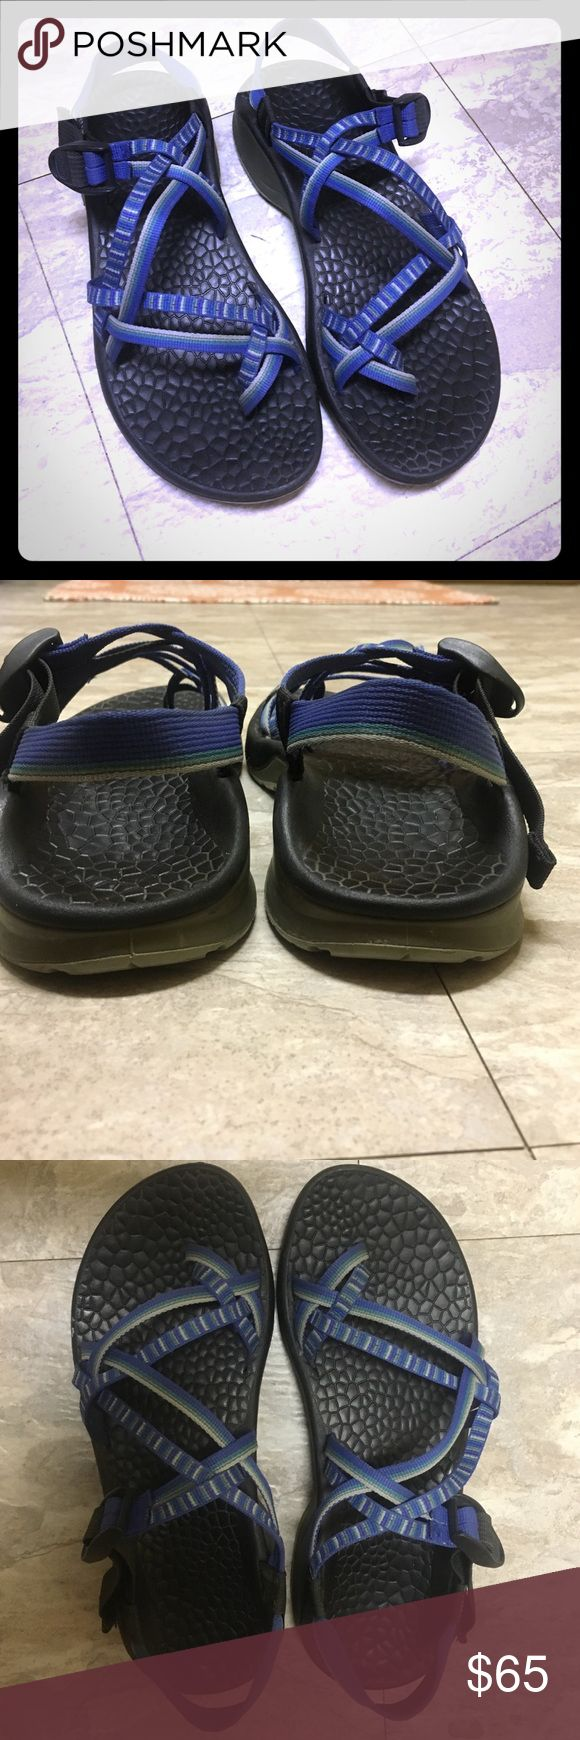 Women's Chaco Sandals Blue, grey, green straps! Very good condition! Lightly used. Size 10 Chacos Shoes Athletic Shoes